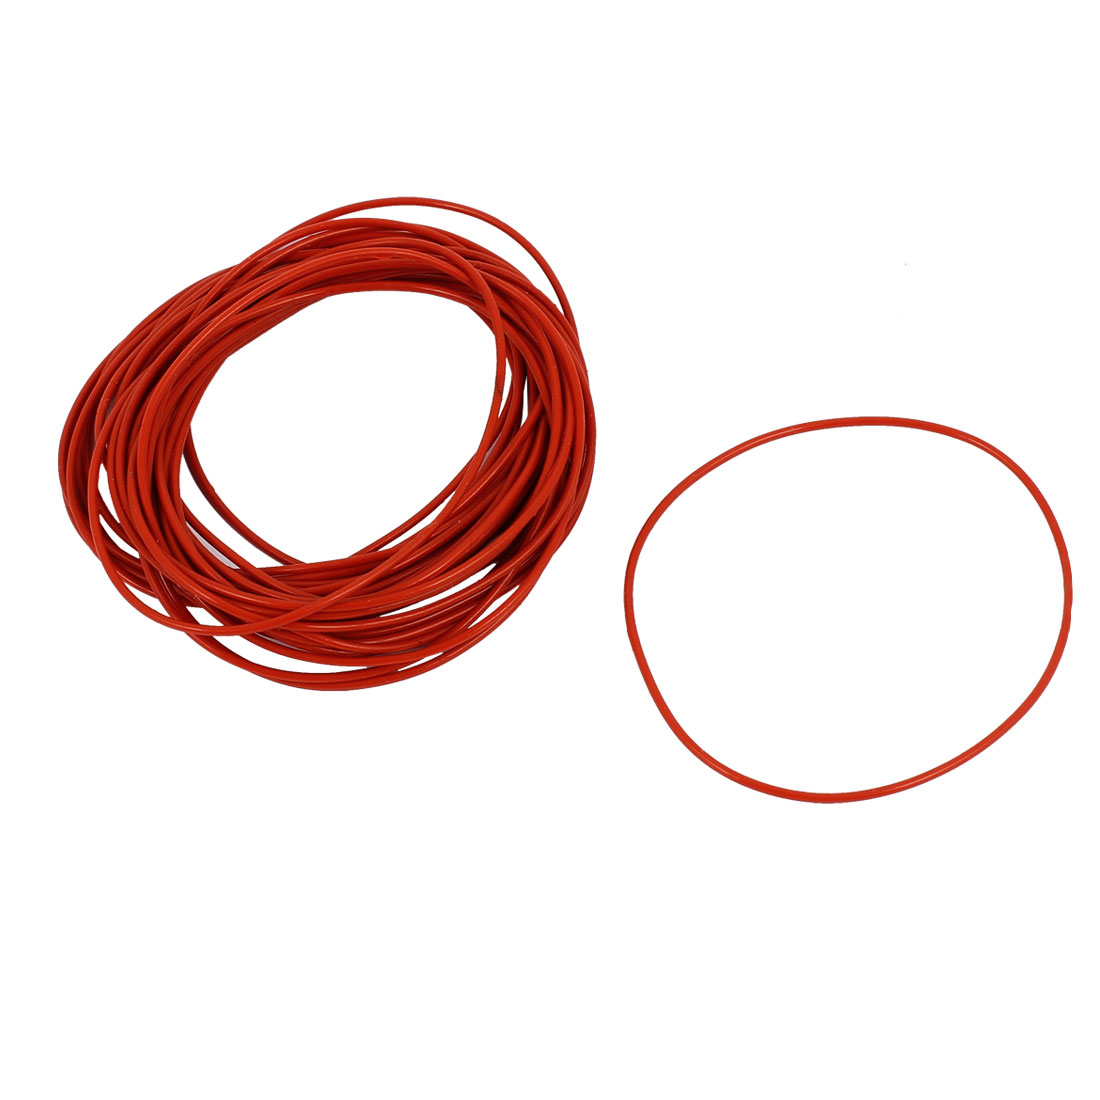 30Pcs 48mm x 1mm Rubber O-rings NBR Heat Resistant Sealing Ring Grommets Red